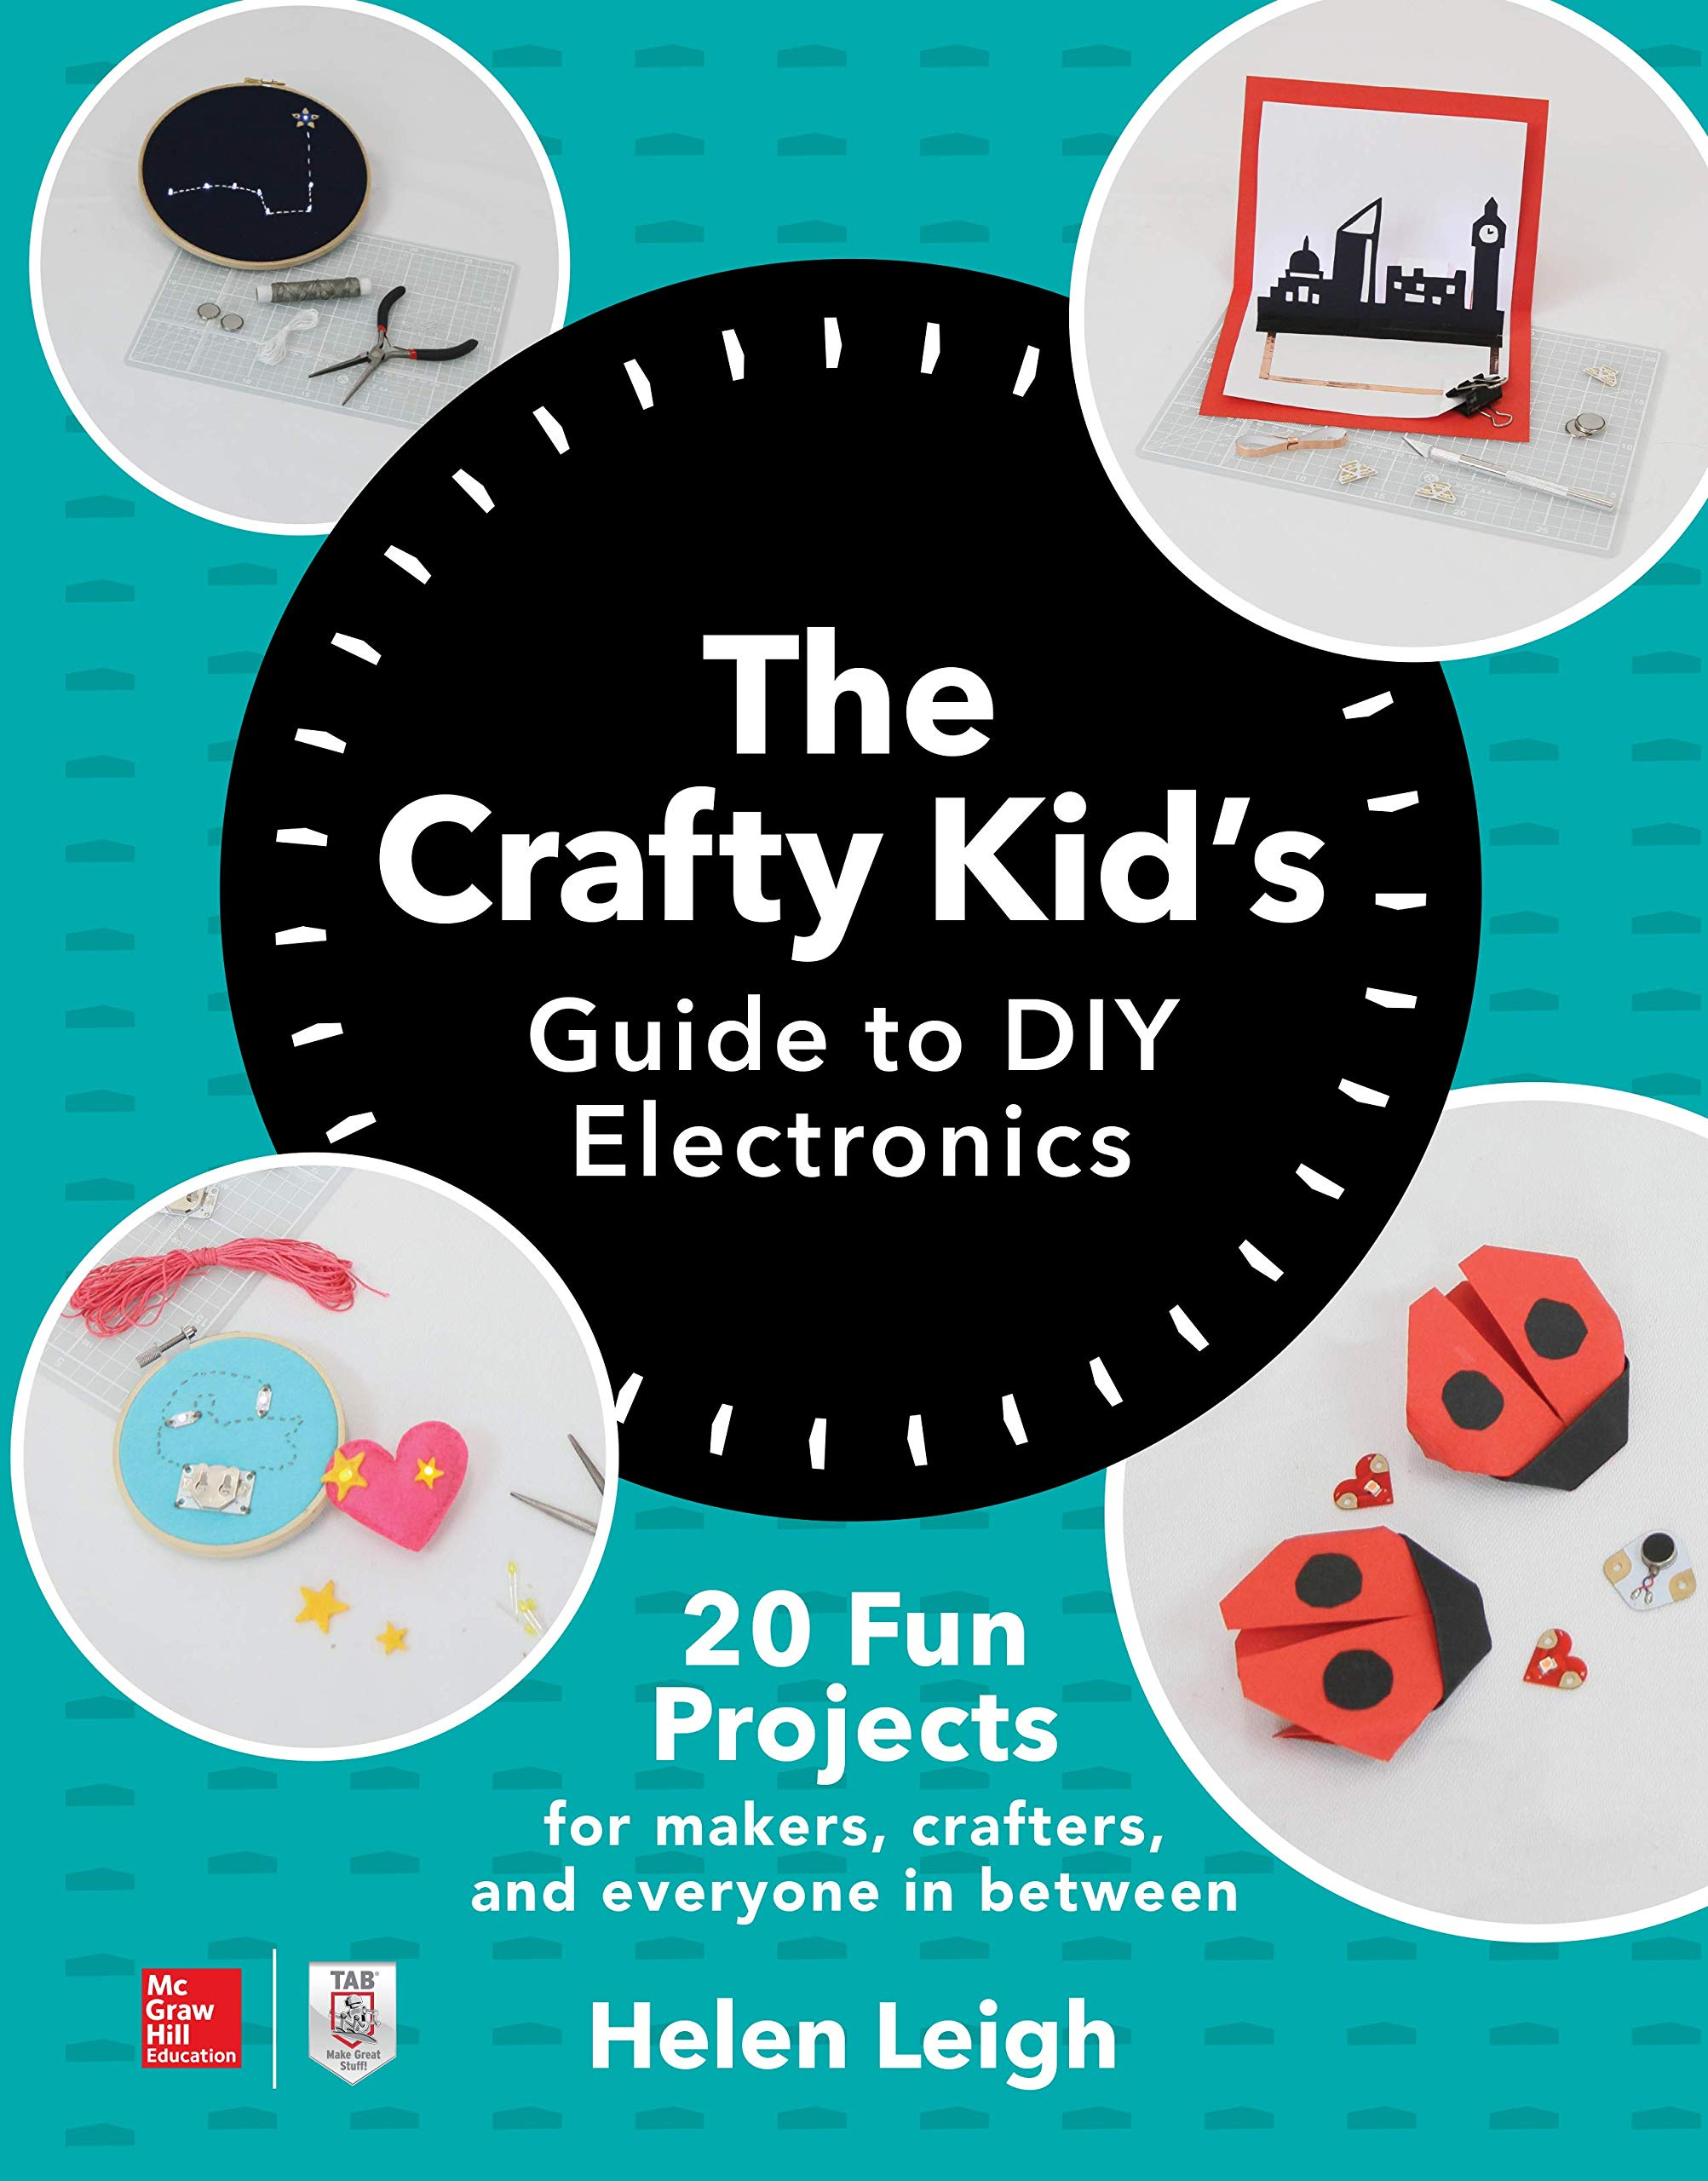 The Crafty Kid's Guide to DIY Electronics ebook